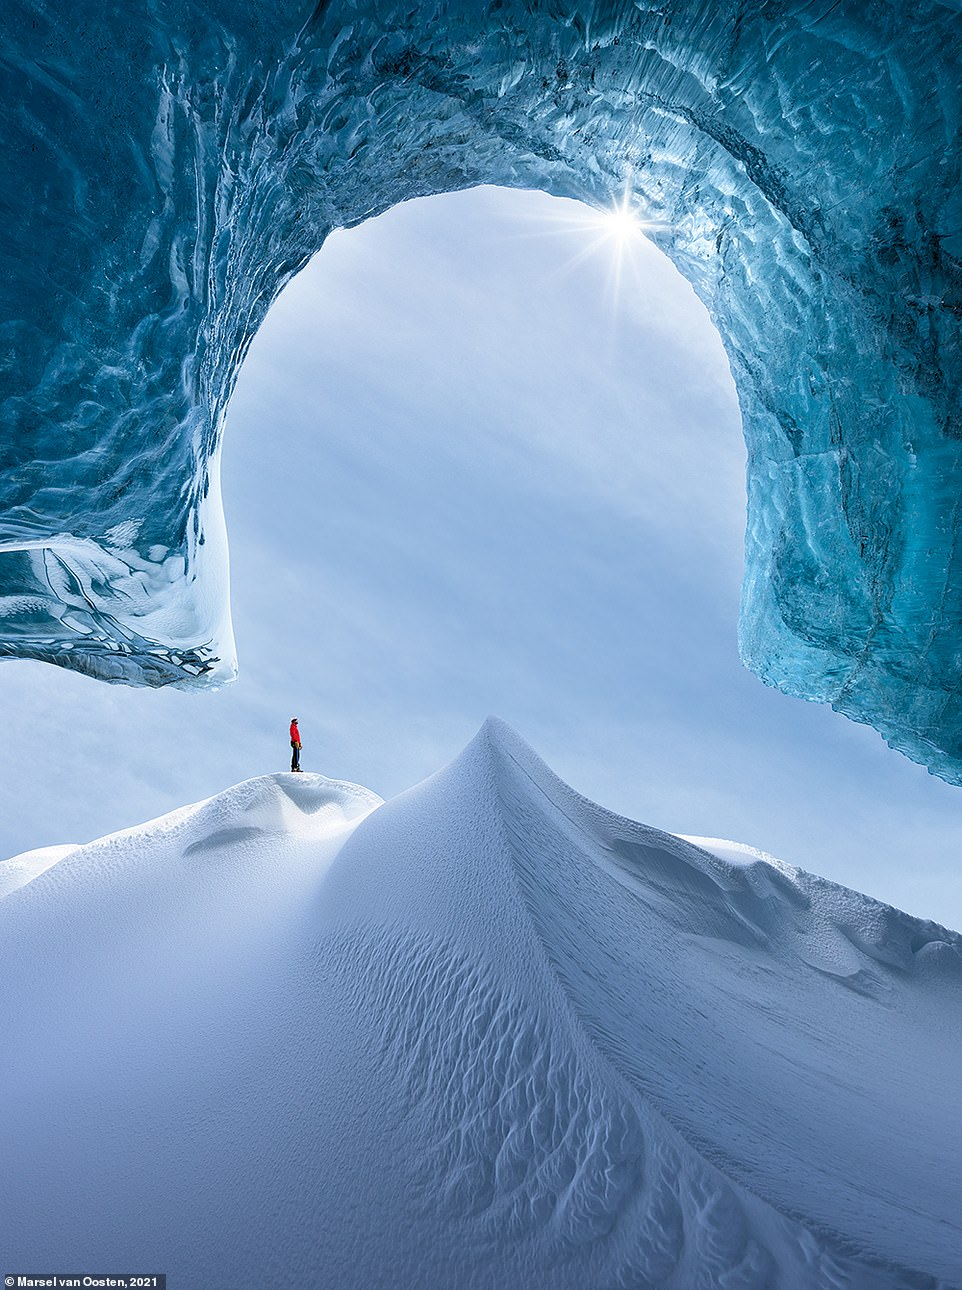 Taken in Iceland, this amazing shot is called 'Portal to Winter'. Marsel explains: 'Glacial caves are among the most inspiring places to photograph. Each year they're different, but always fascinating and mind-blowingly beautiful - it's hard to beat nature's architecture. As so often in my landscape photography, I decided to include a human element. Without it, it would be impossible to appreciate the scale here'